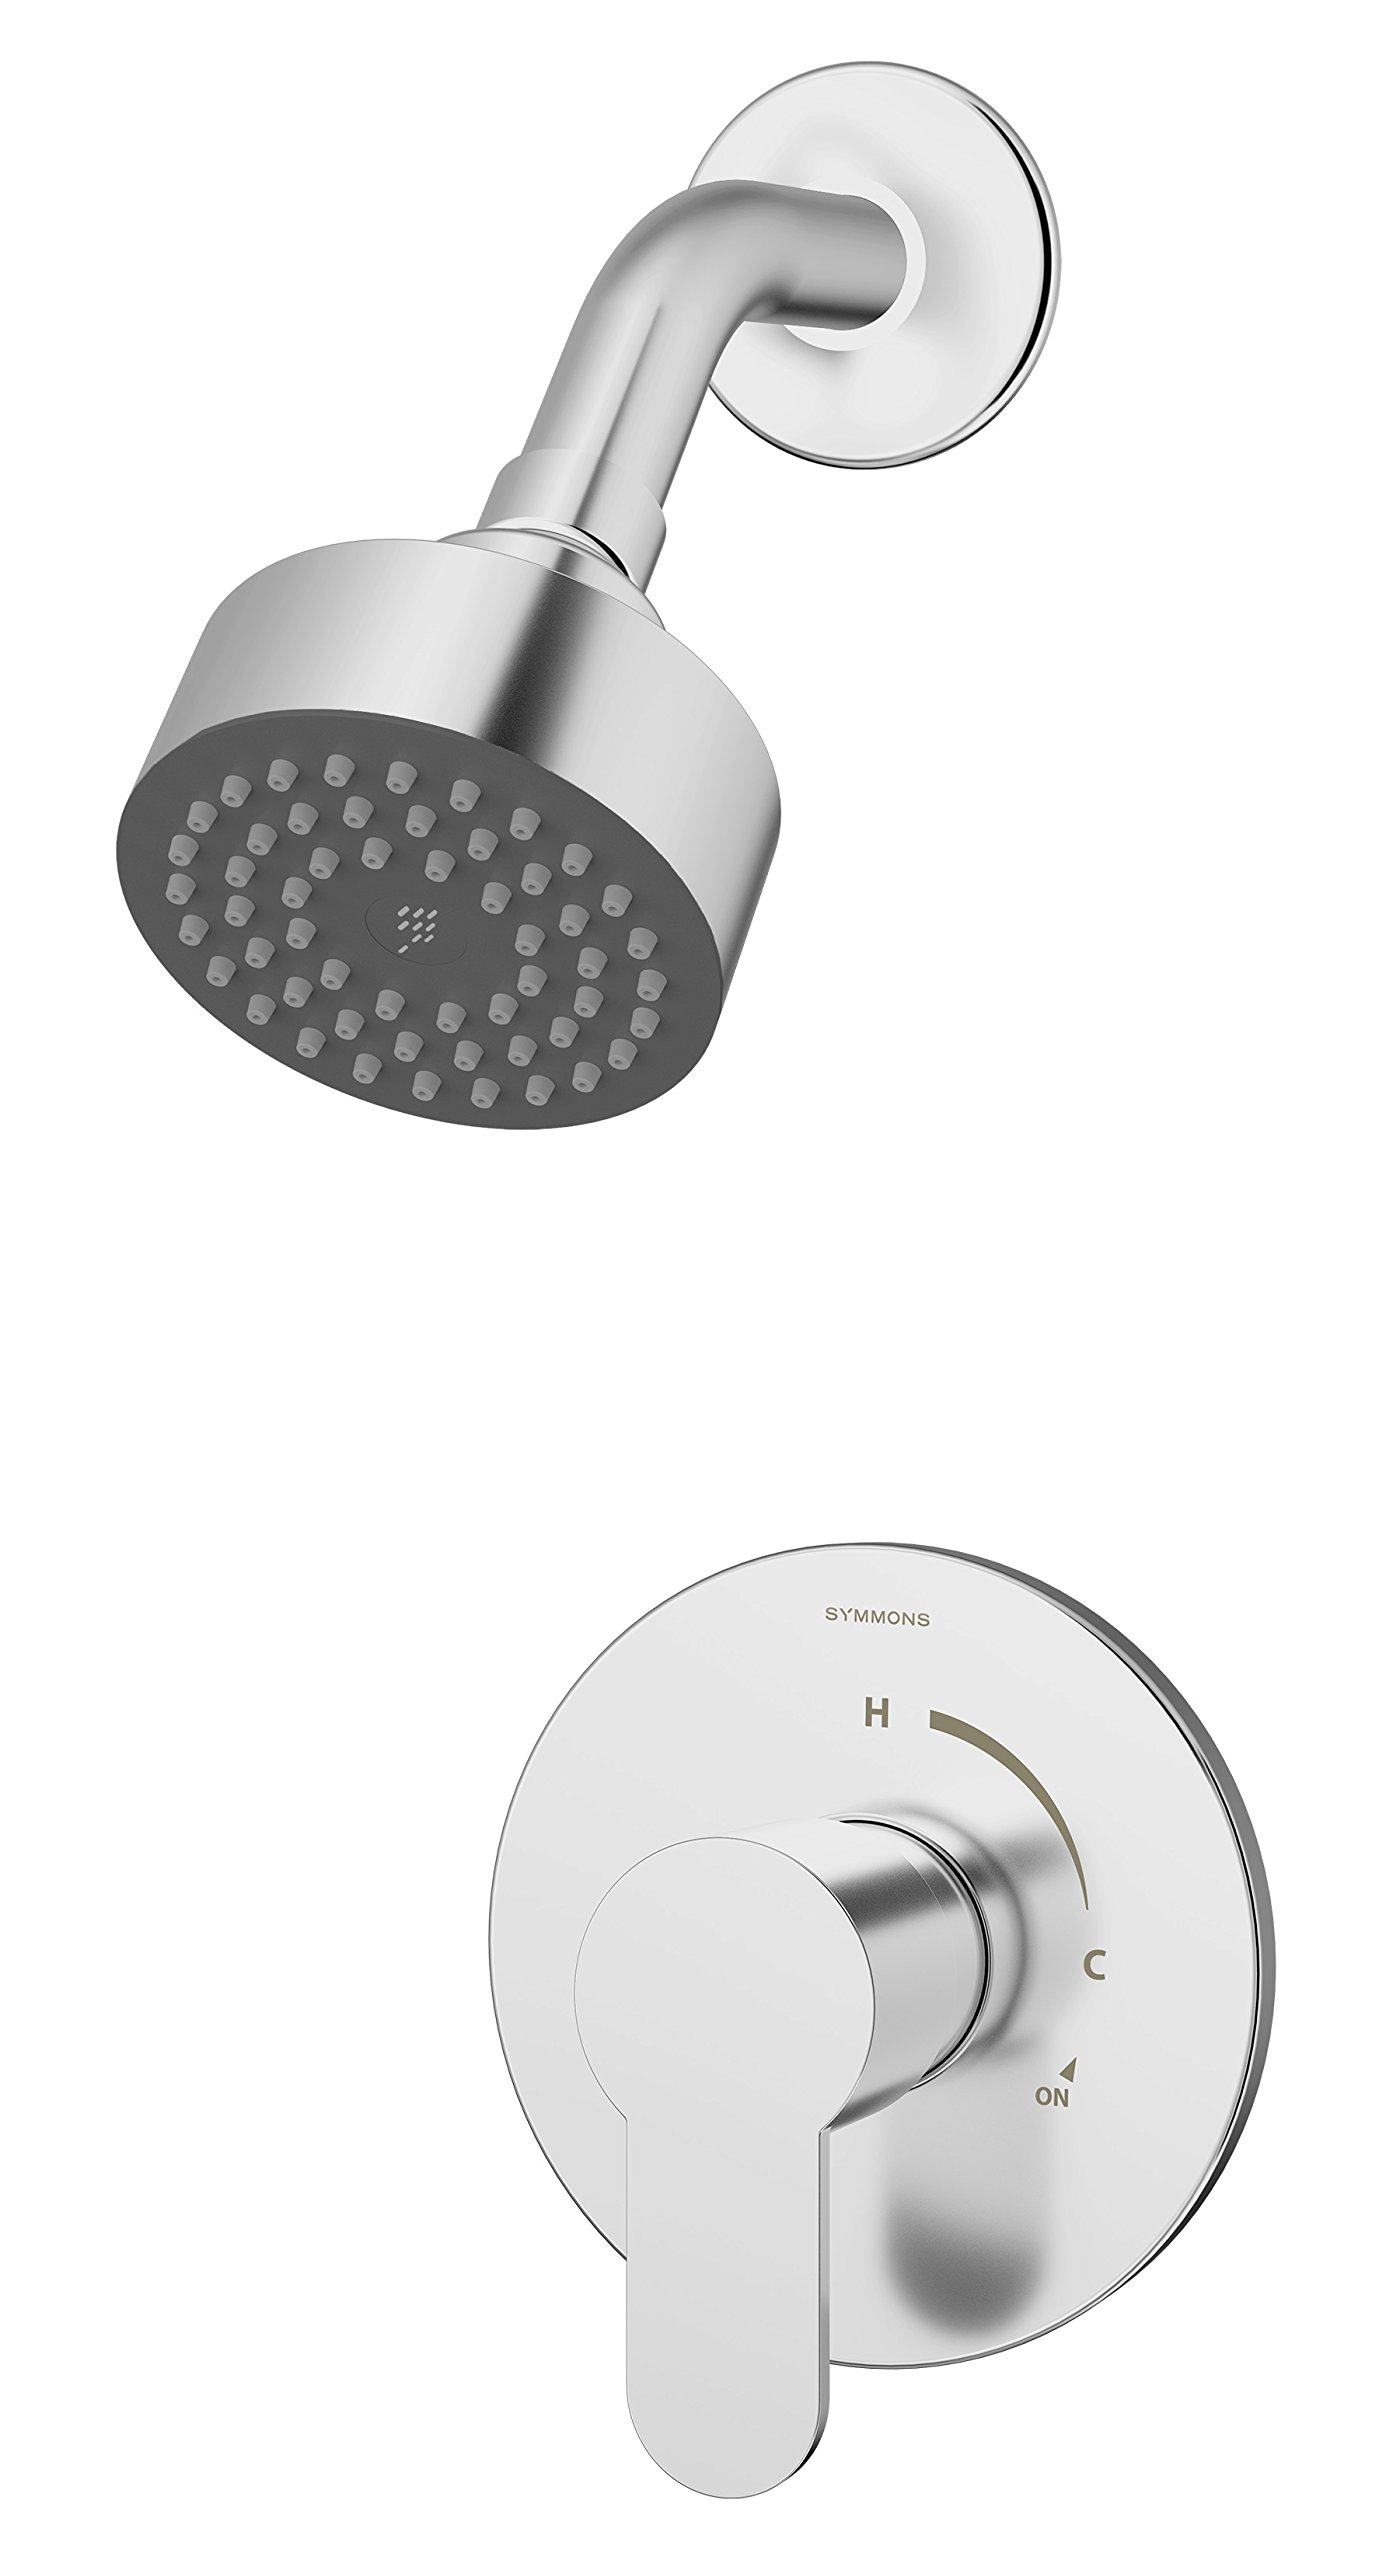 Symmons 6701-1.5-TRM Identity 1-Handle Shower Faucet Trim Kit In (Valve Not Included), Chrome